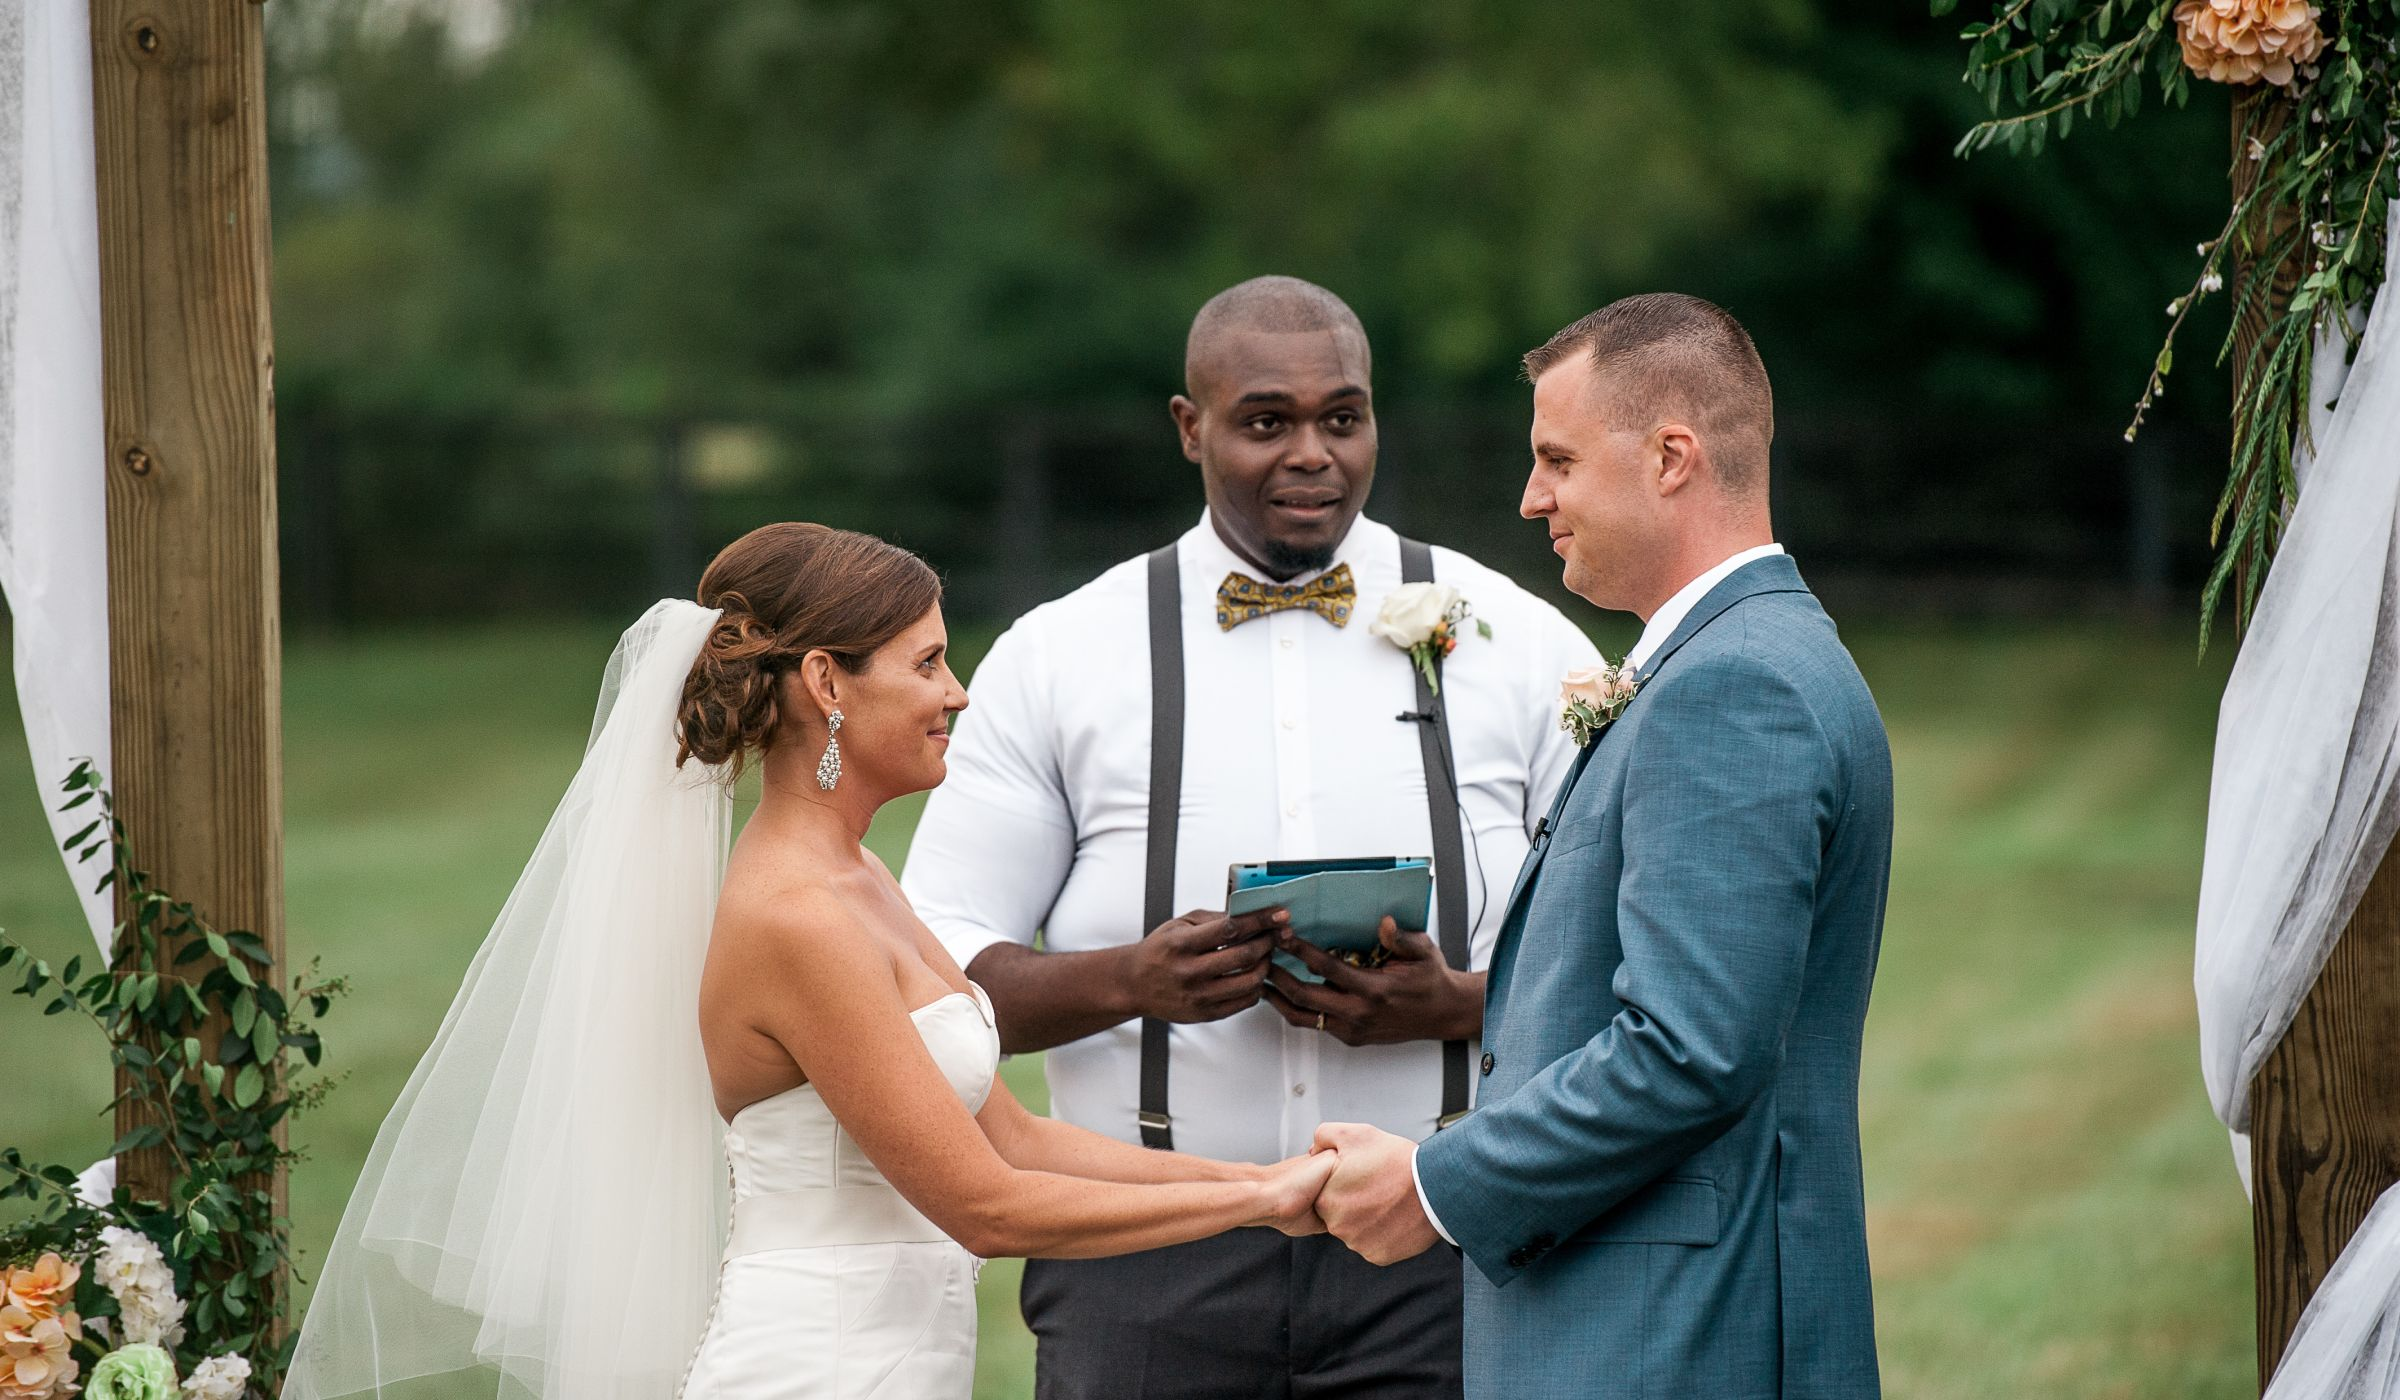 6 Steps To Finding The Right Wedding Officiant For You